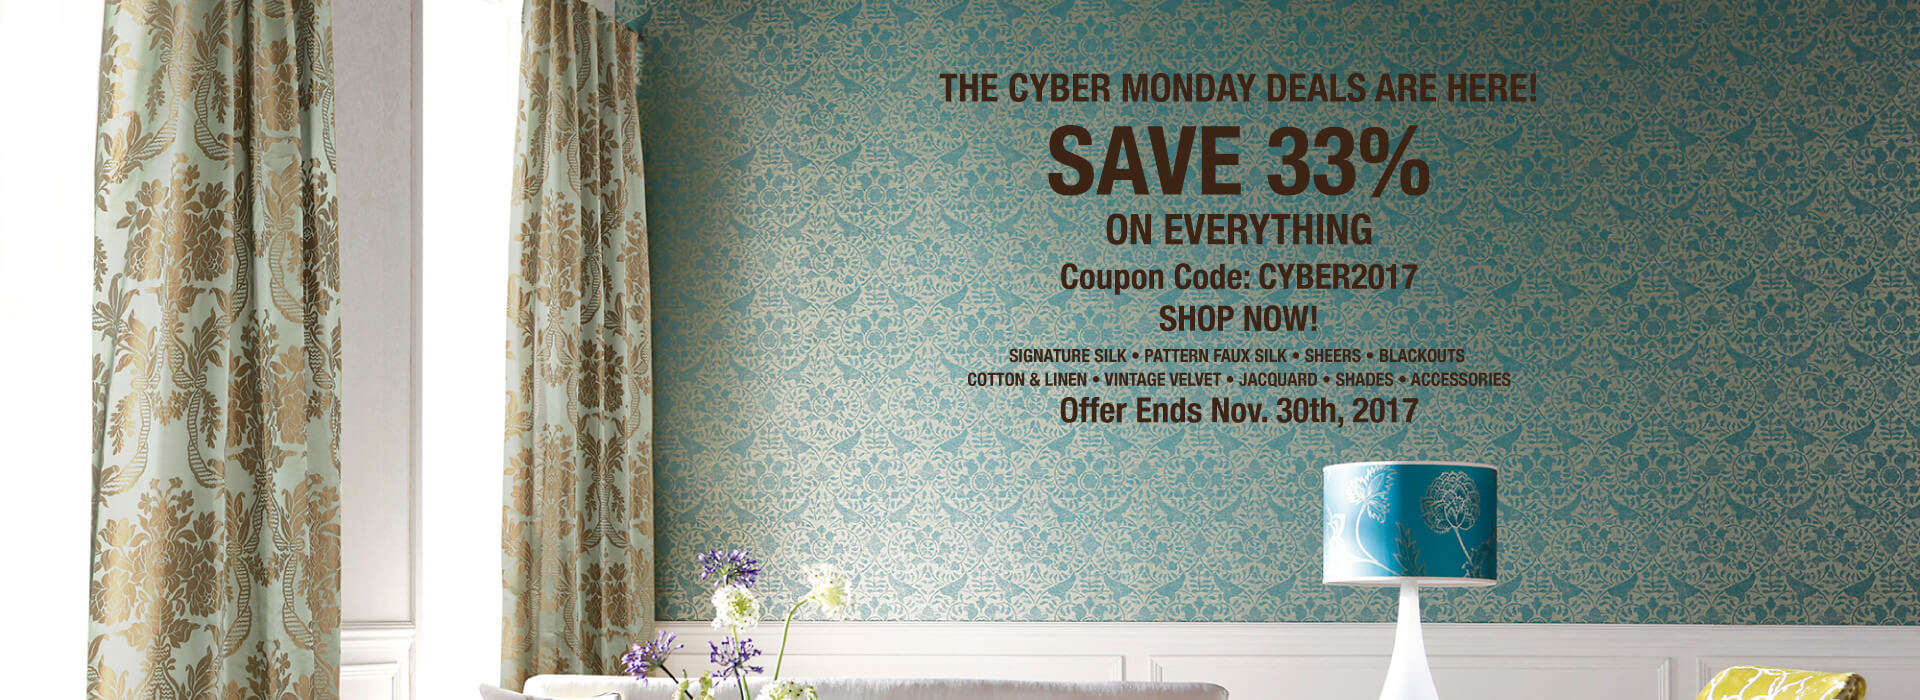 The Mystery Discount Offer - Saving From 20% - 70% Site-wide